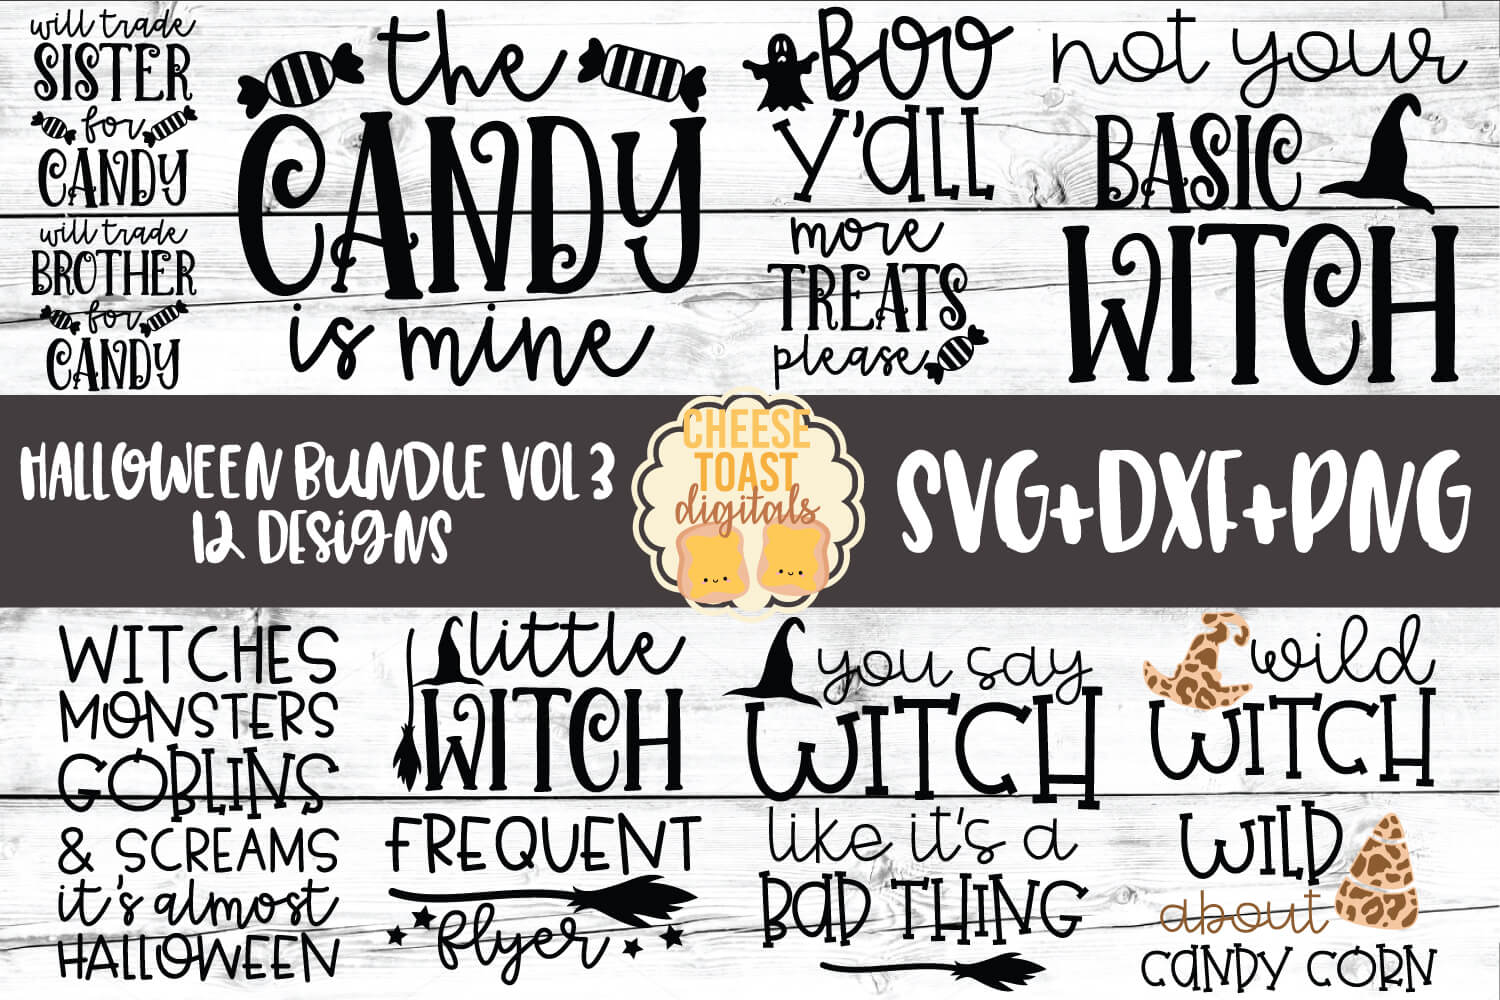 Download Free Halloween Bundle Vol 3 12 Designs Graphic By for Cricut Explore, Silhouette and other cutting machines.